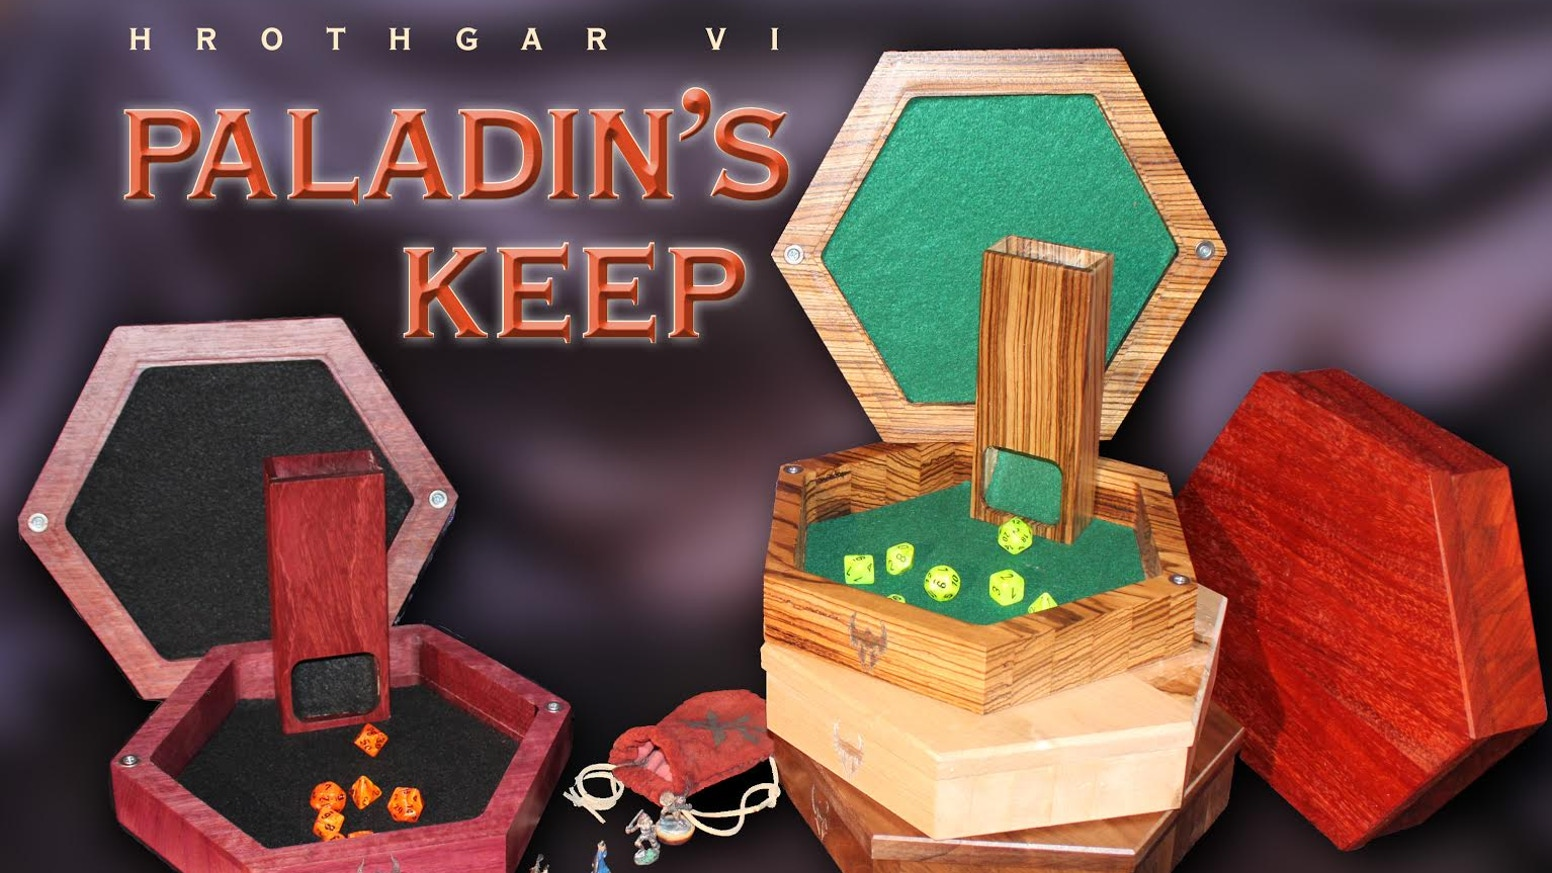 The Paladin's Keep is a heavy-duty travel dice tower and tray system great for any tabletop game!